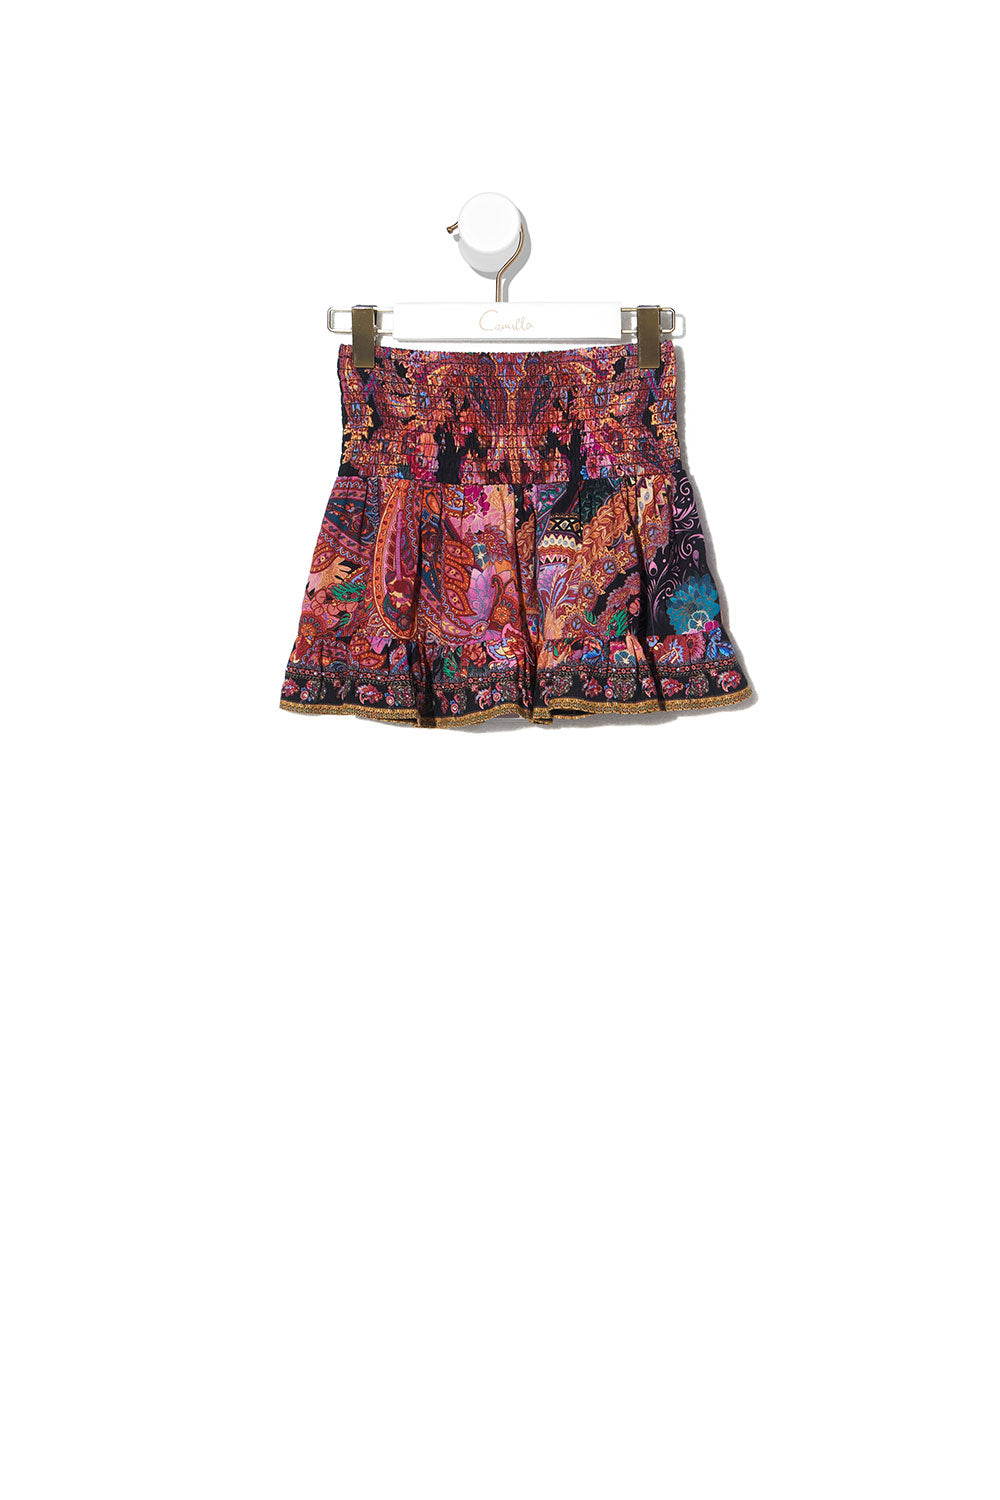 KIDS SHIRRING WAIST SKIRT 12-14 MAYFAIR MARY